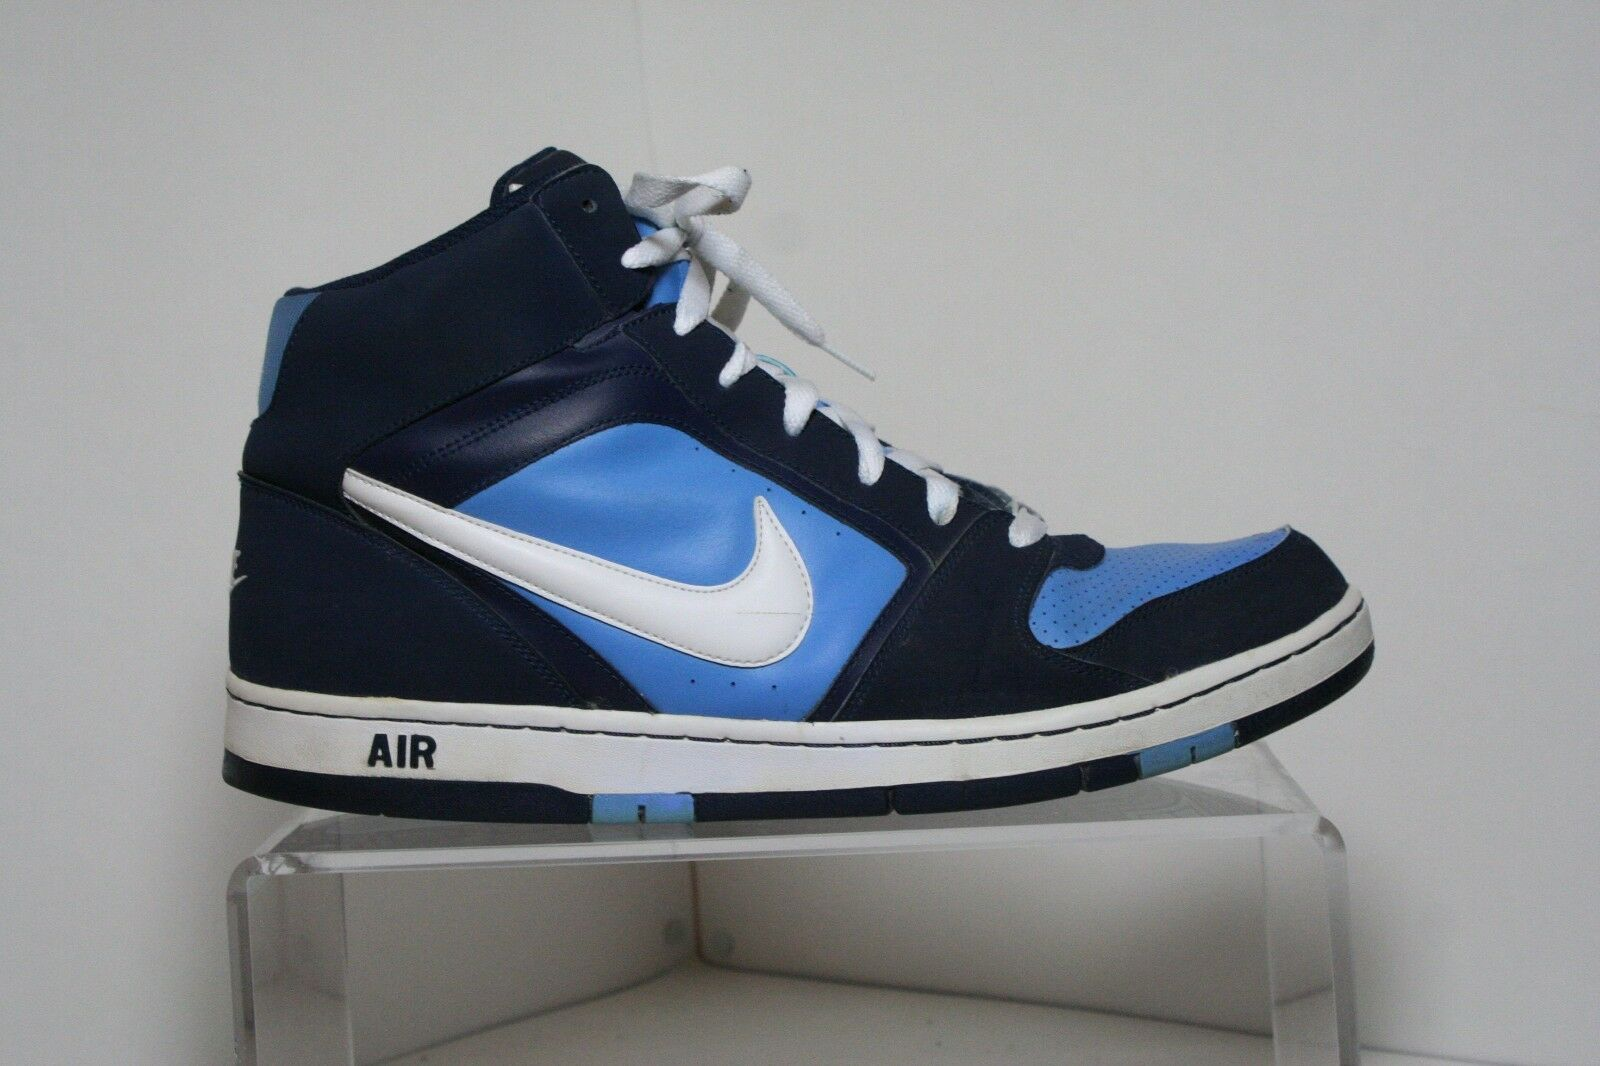 Nike Air Air Air Prestige II High 09' Athletic Carolina UNC Jordan Athletic   9f872d